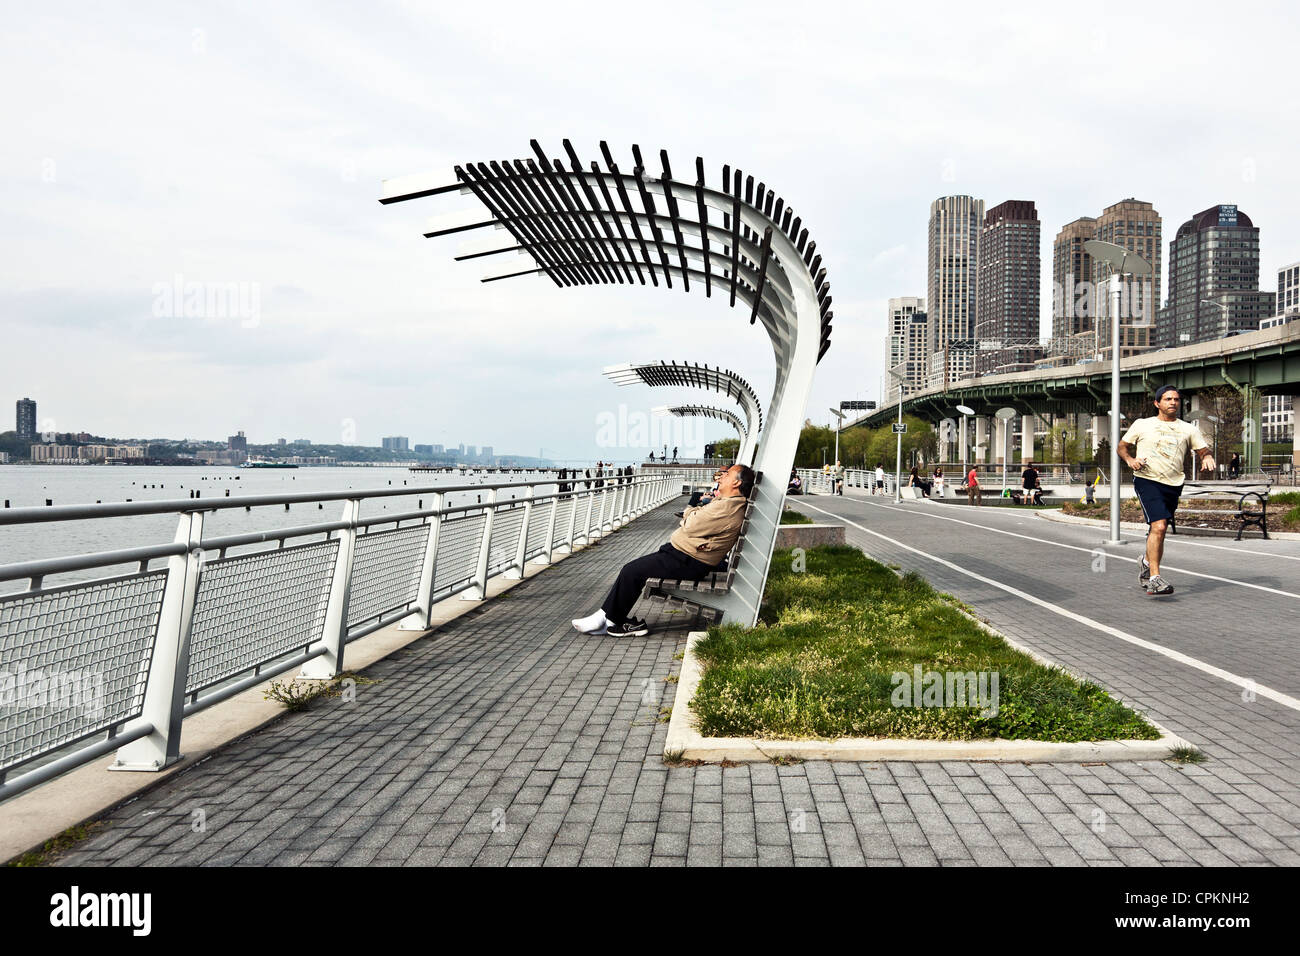 man snoozes on bench with shade canopy on Riverside Park esplanade as runner passes in front of West Side Highway - Stock Image